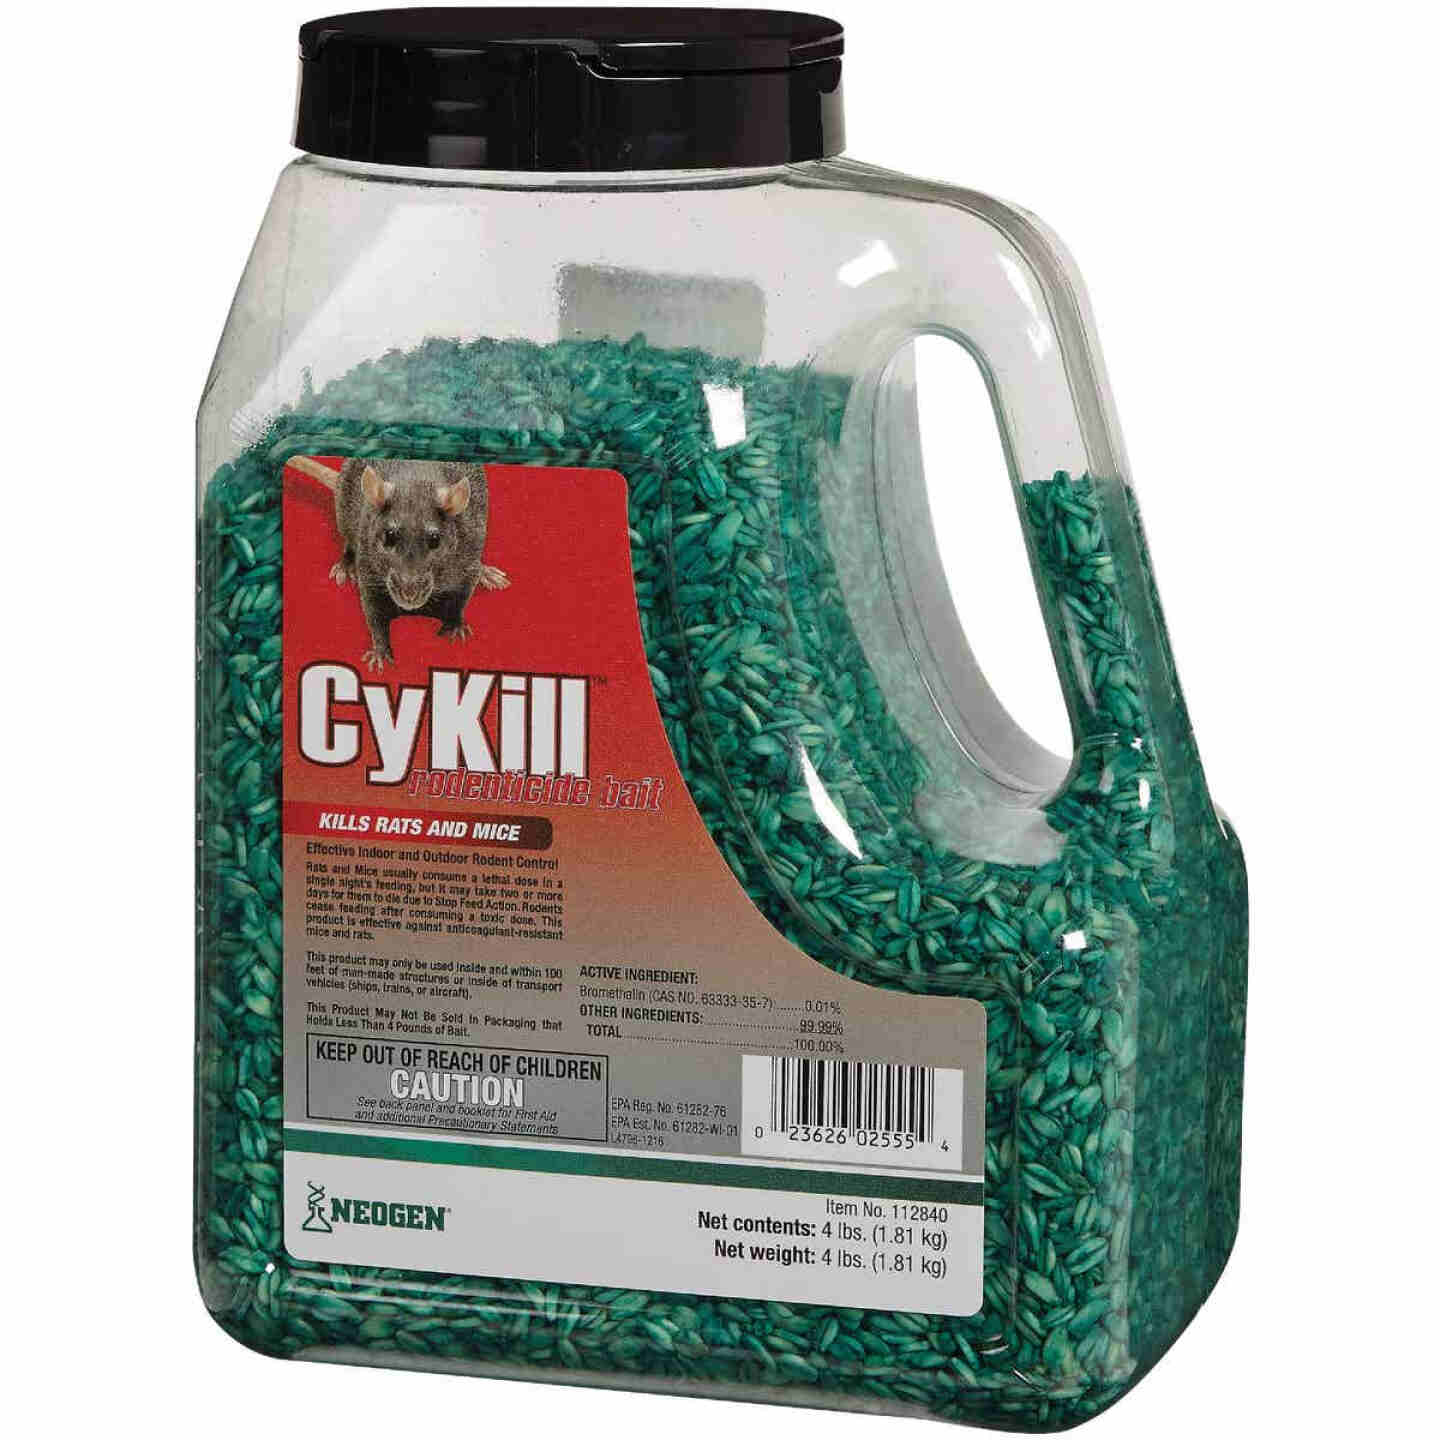 CyKill Seed Meal Bait Rat And Mouse Poison, 4 Lb. Image 3